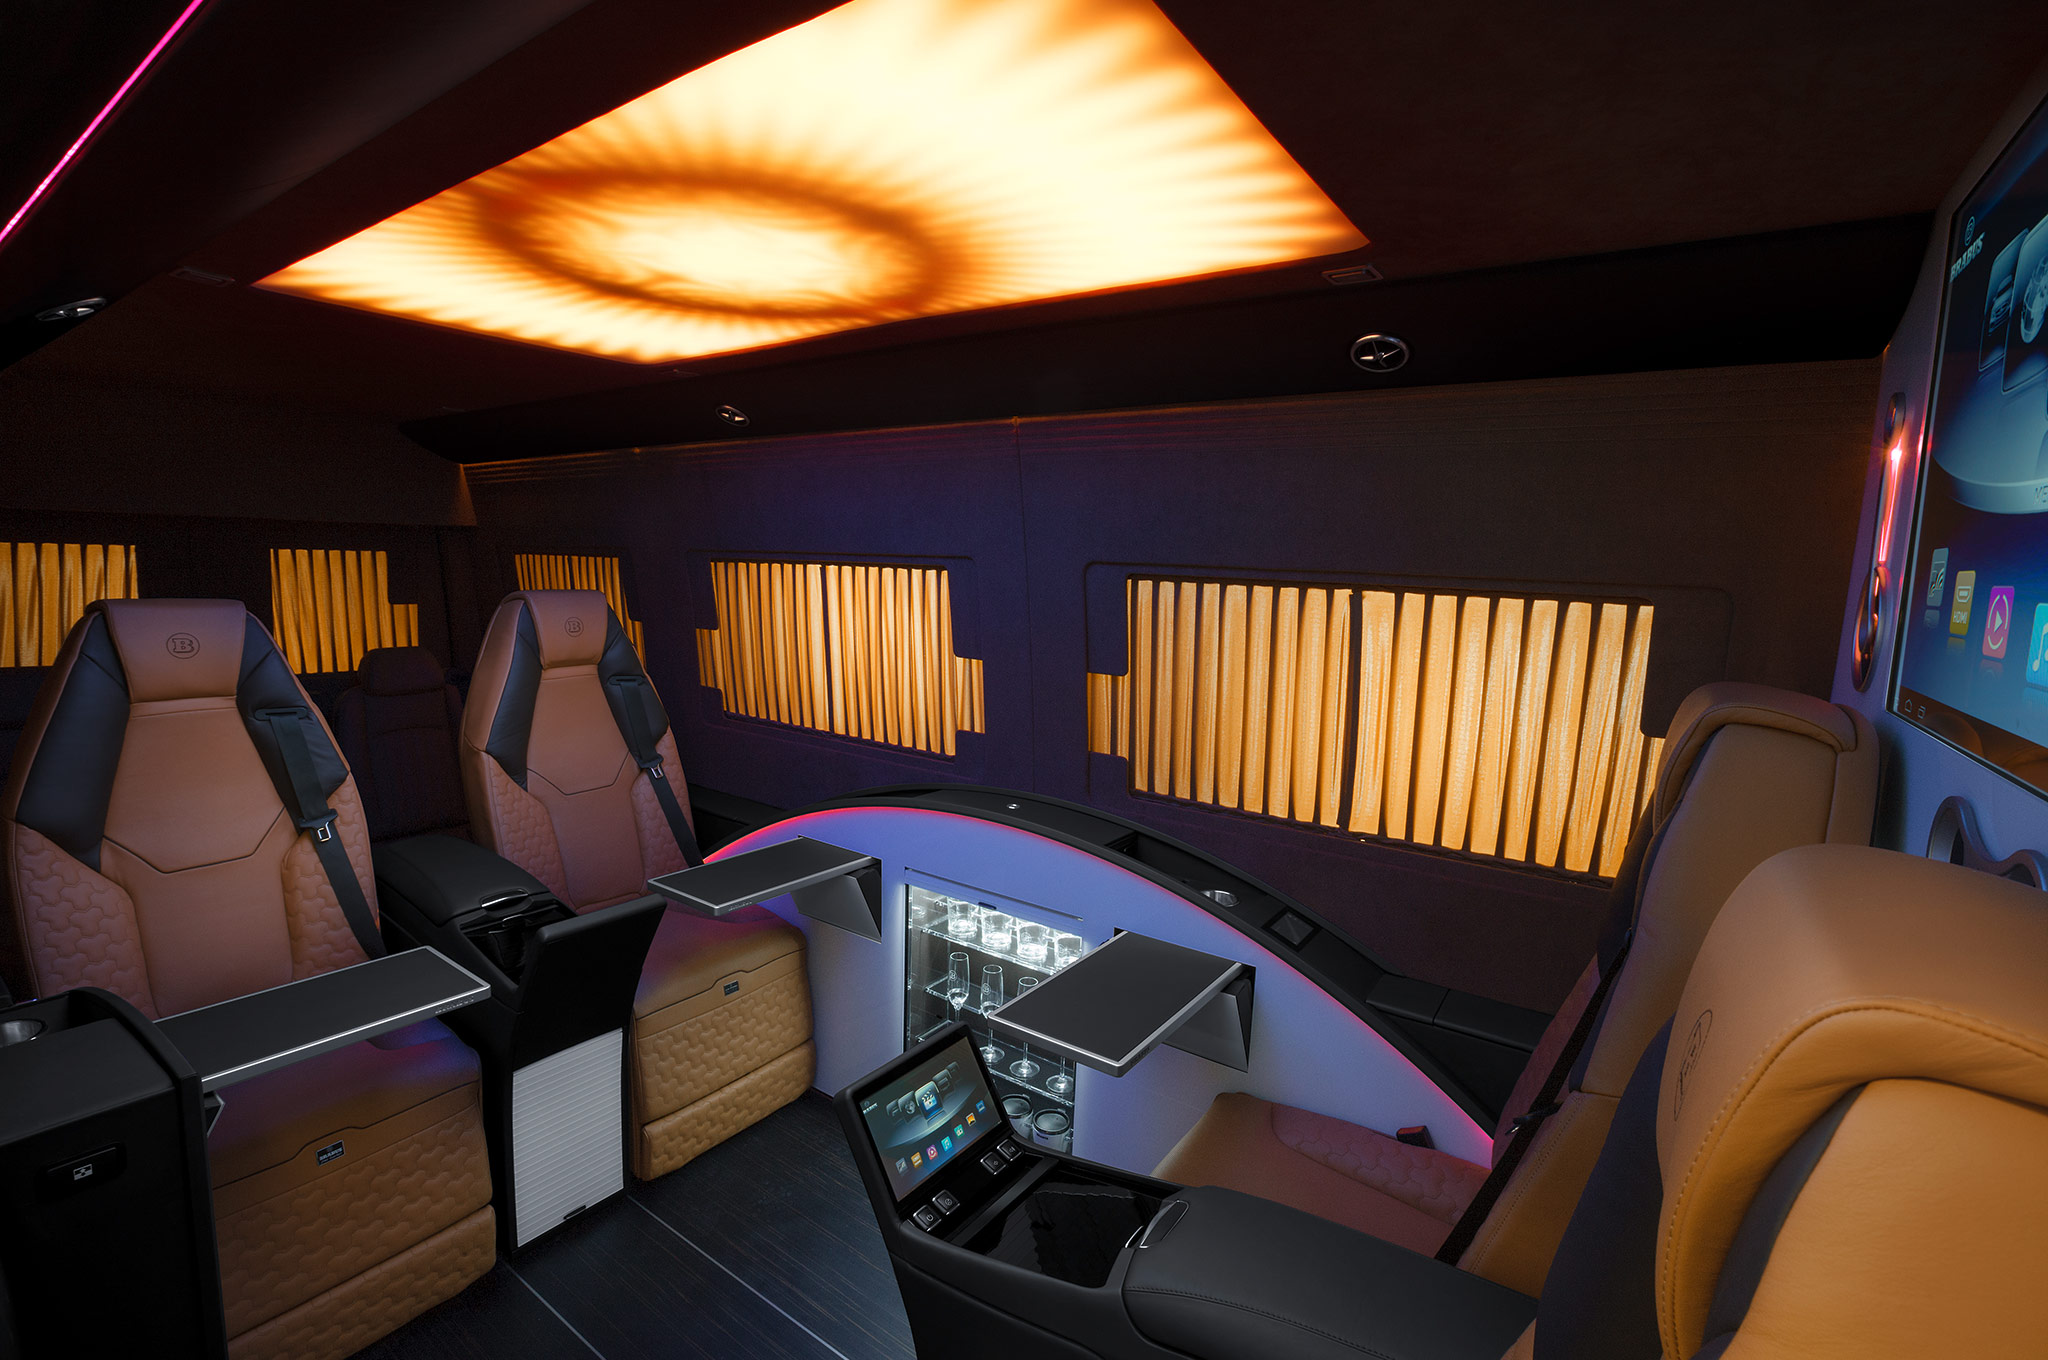 ' ' from the web at 'http://st.automobilemag.com/uploads/sites/11/2014/08/Brabus-Mercedes-Benz-Sprinter-Business-Lounge-interior-lights-dimmed.jpg'